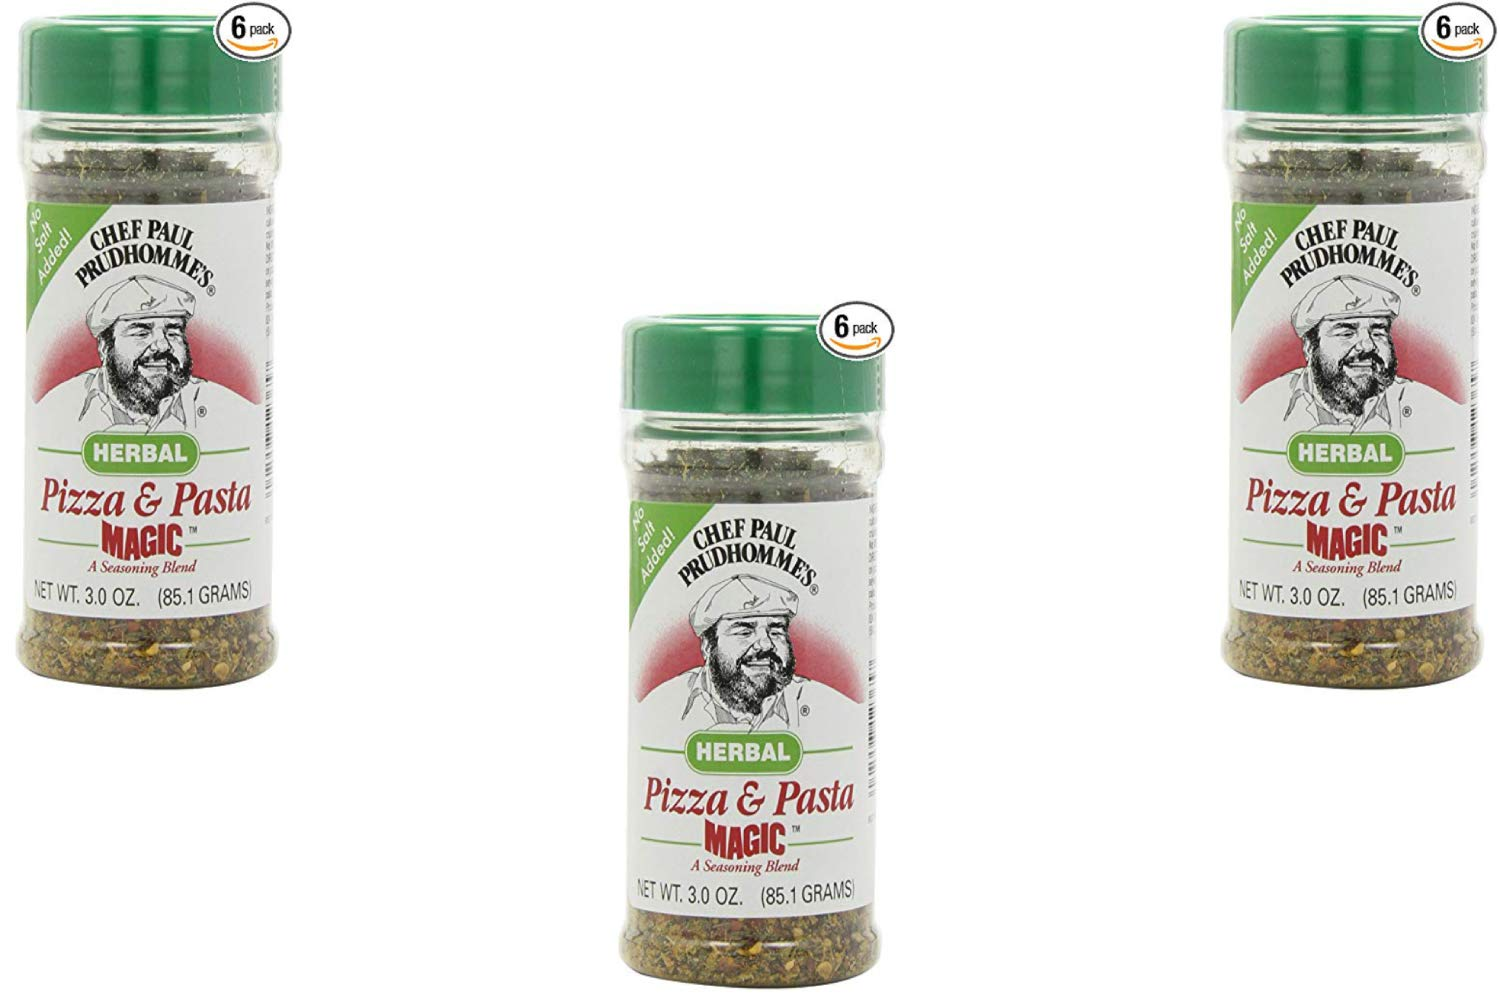 Magic Seasoning Blends Herbal Pizza and Pasta Magic, 3-Ounce Bottles (Pack of 6) (3 Pack)